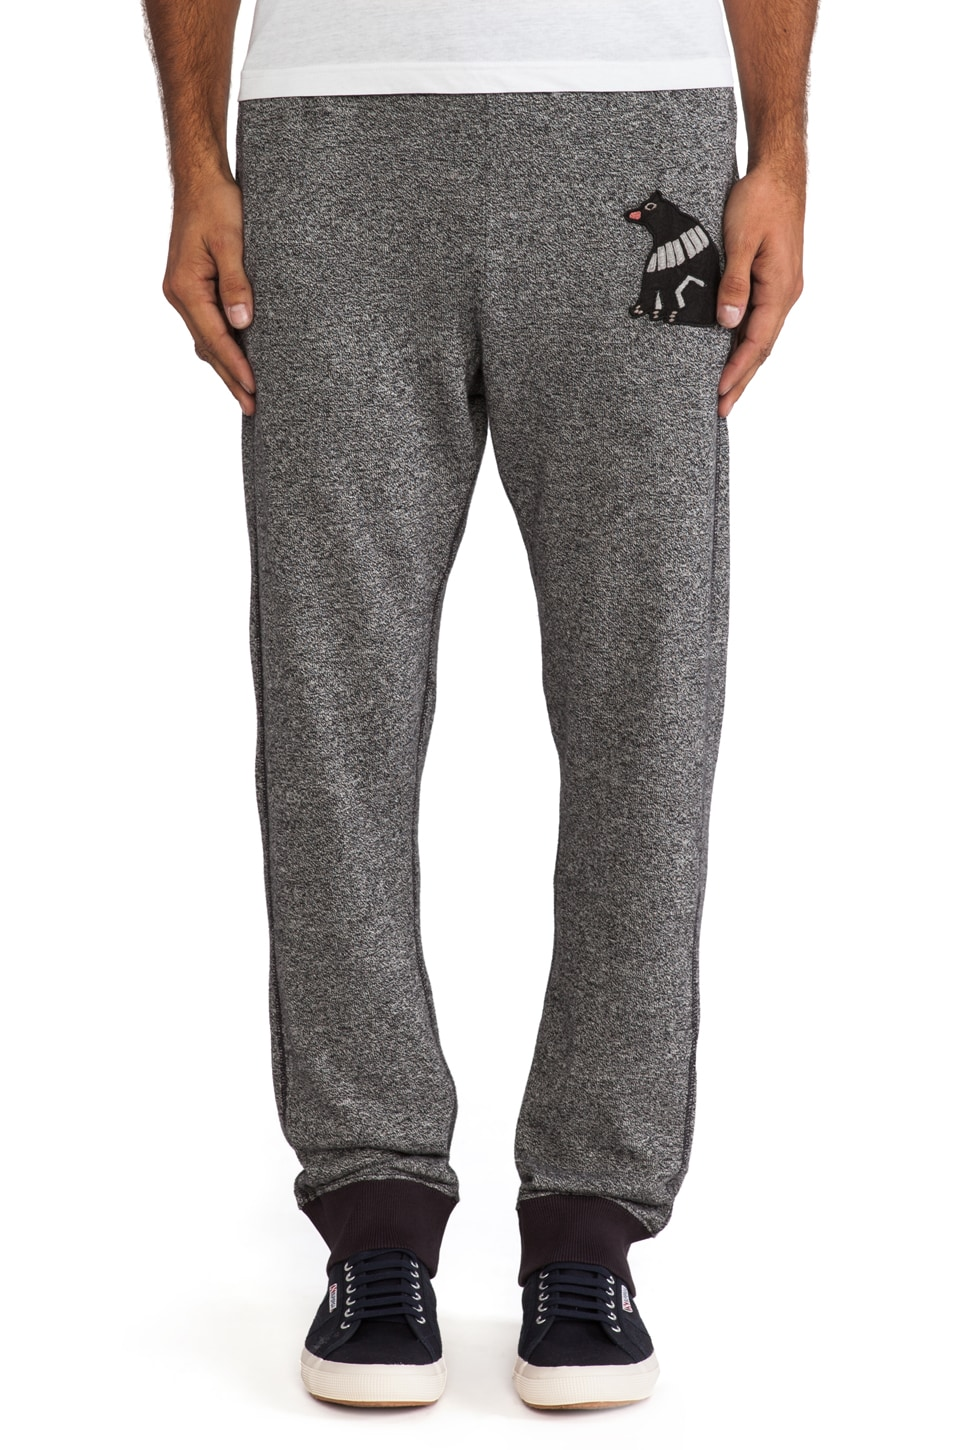 Burkman Bros. Bear Sweatpant in Grey